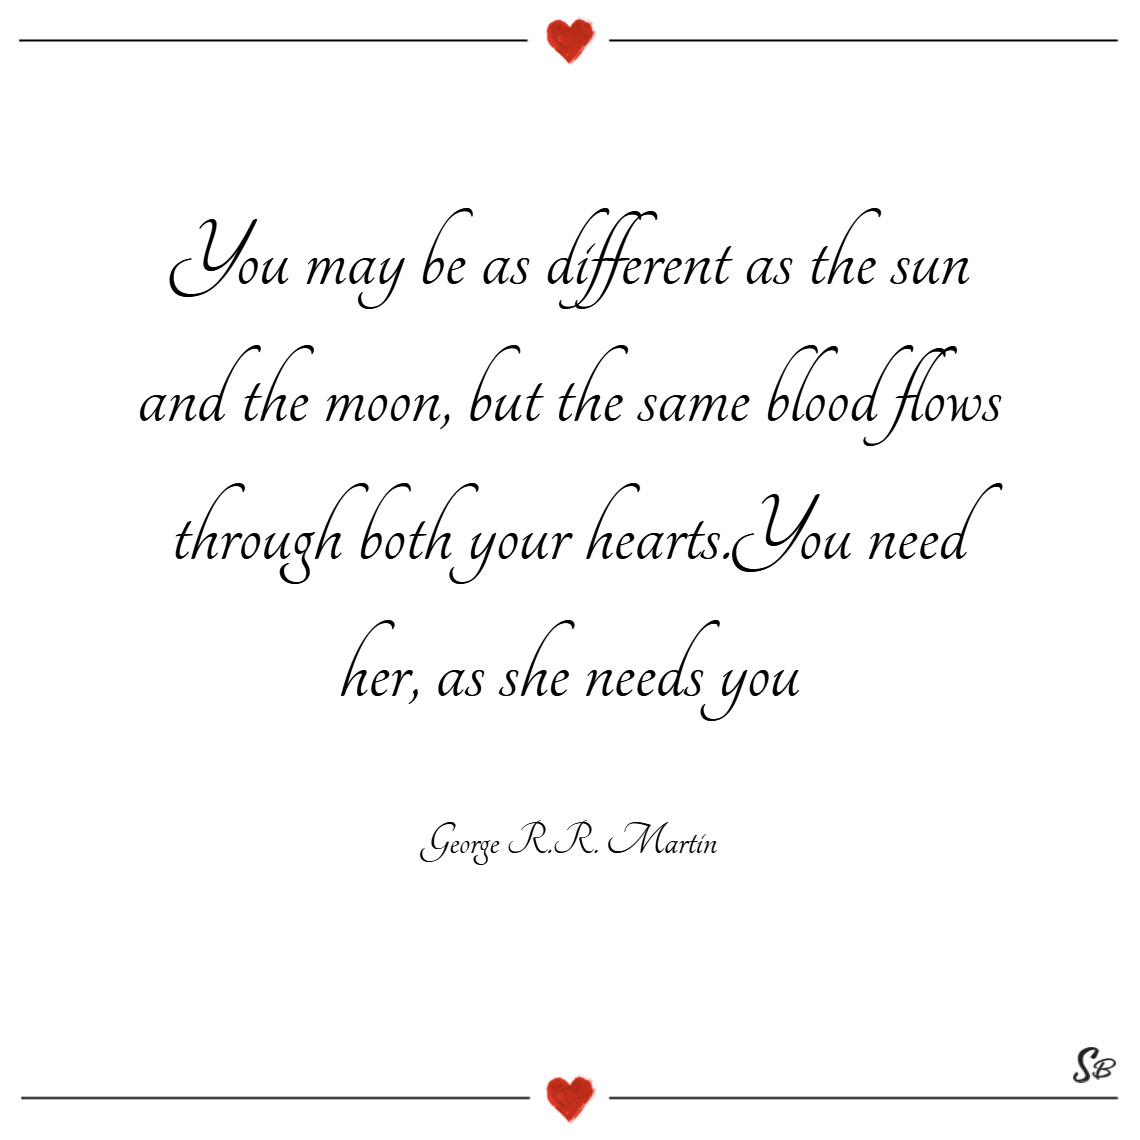 You may be as different as the sun and the moon, but the same blood flows through both your hearts. you need her, as she needs you. – george r.r. martin Brother and sister quotes